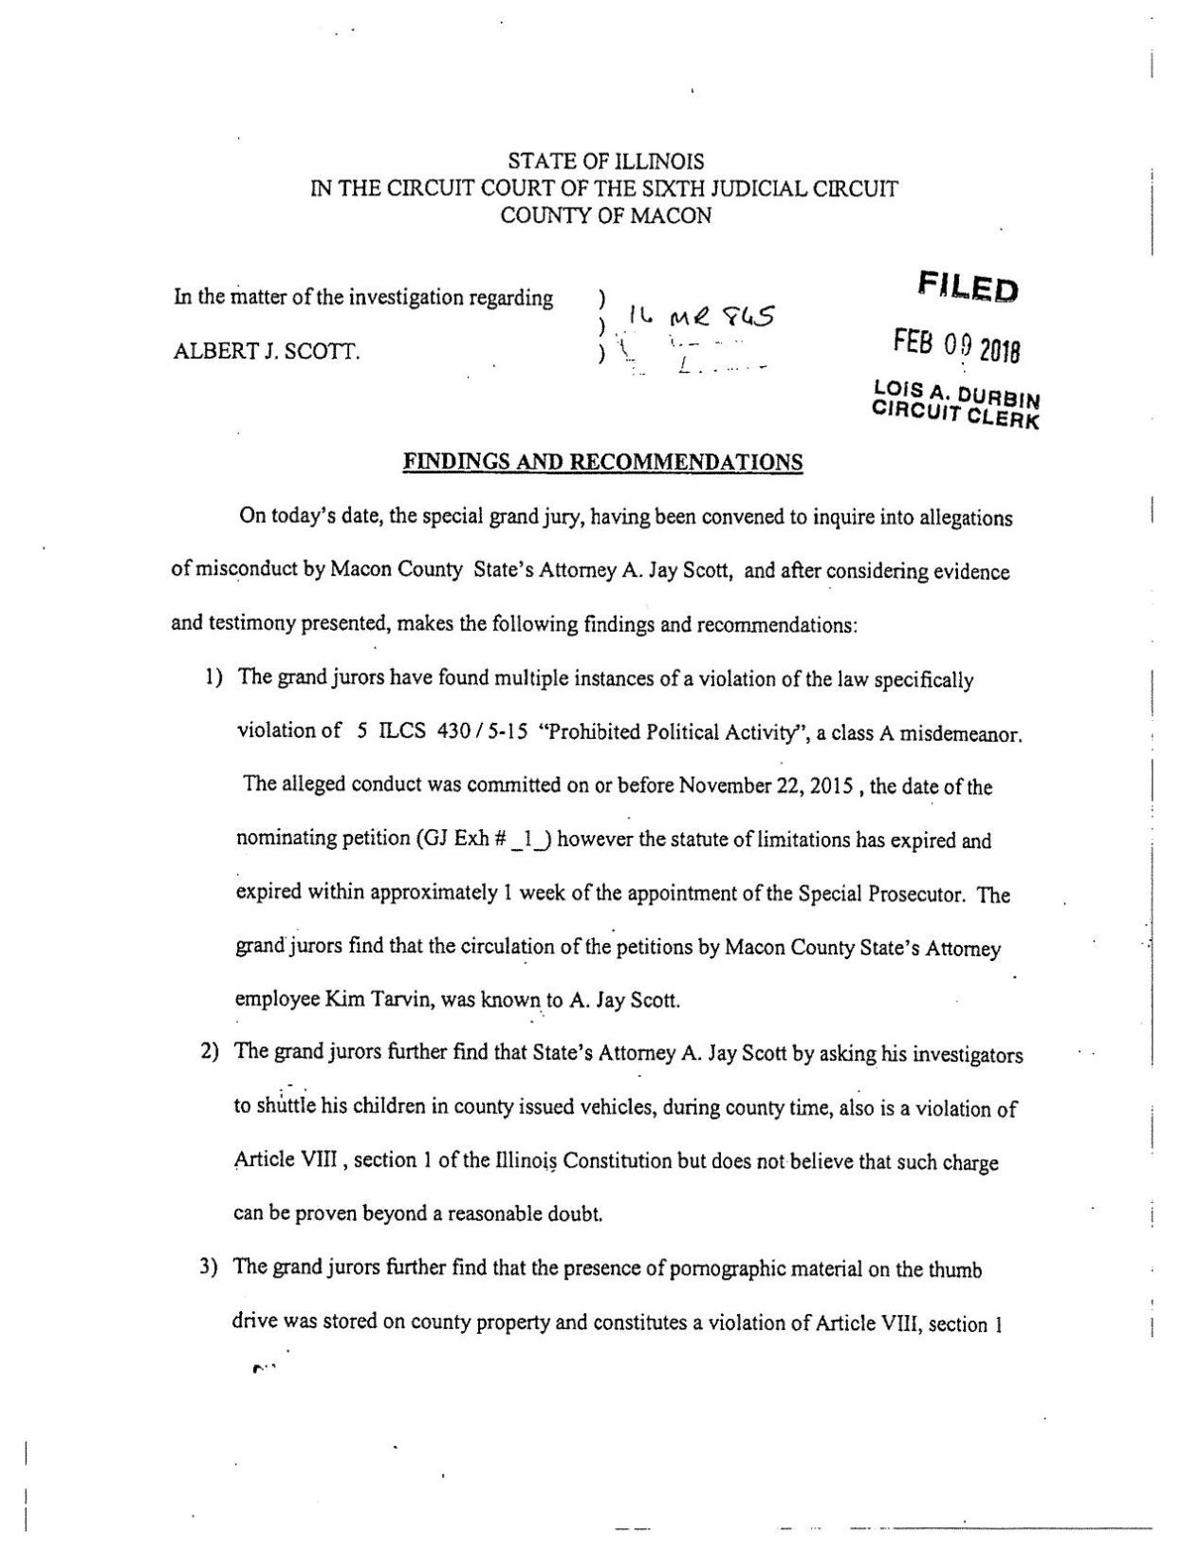 Grand Jury Findings - Feb. 9